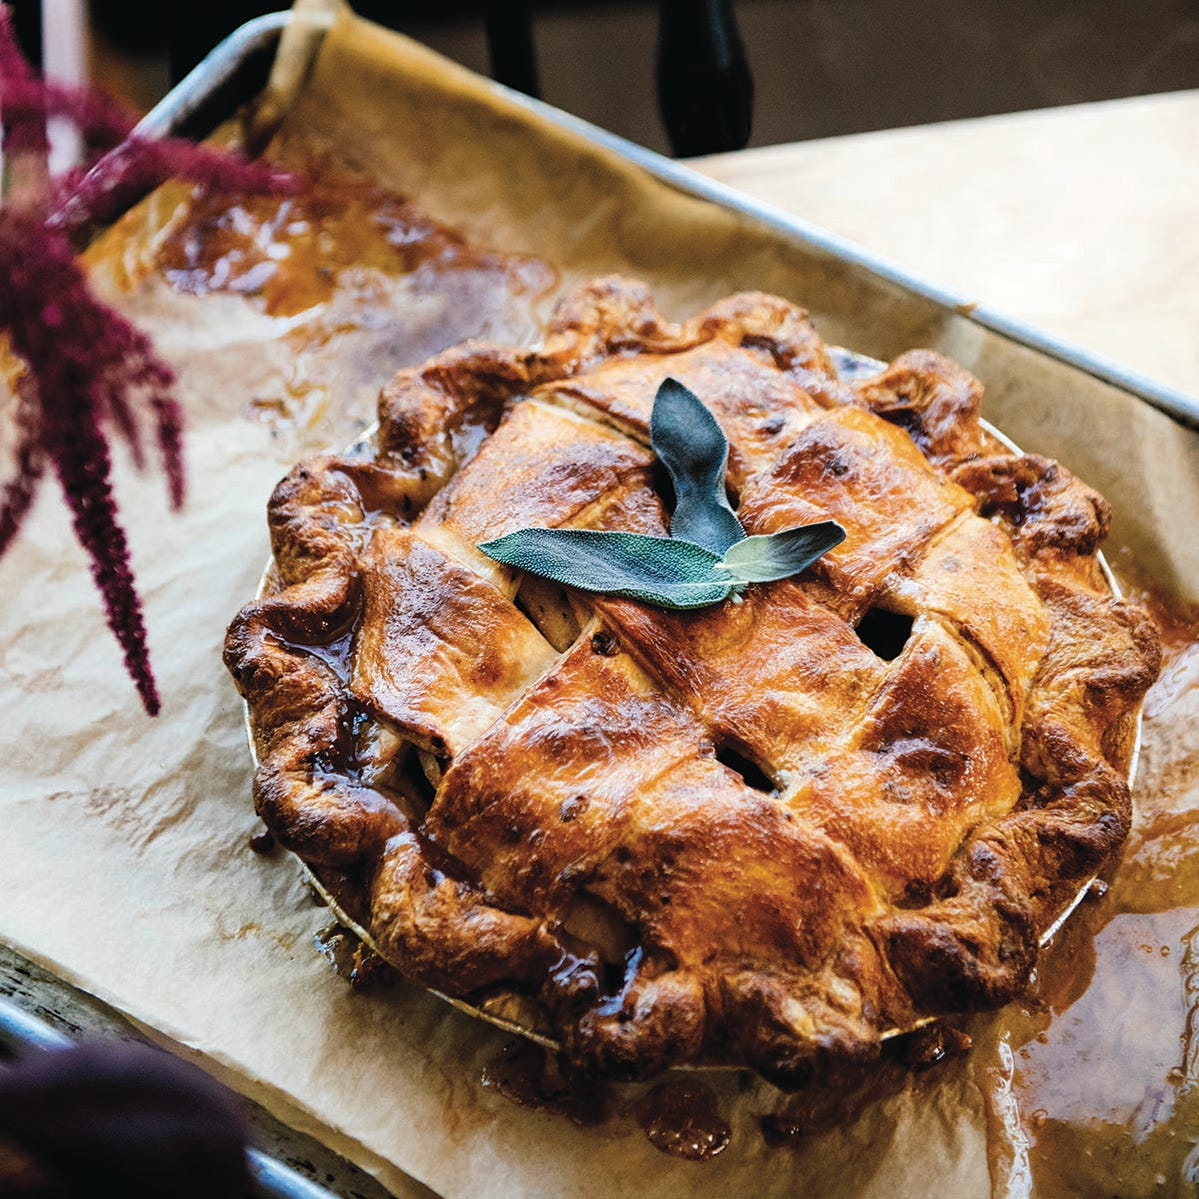 Sister Pie, Zingerman's nominated for James Beard Foundation Awards